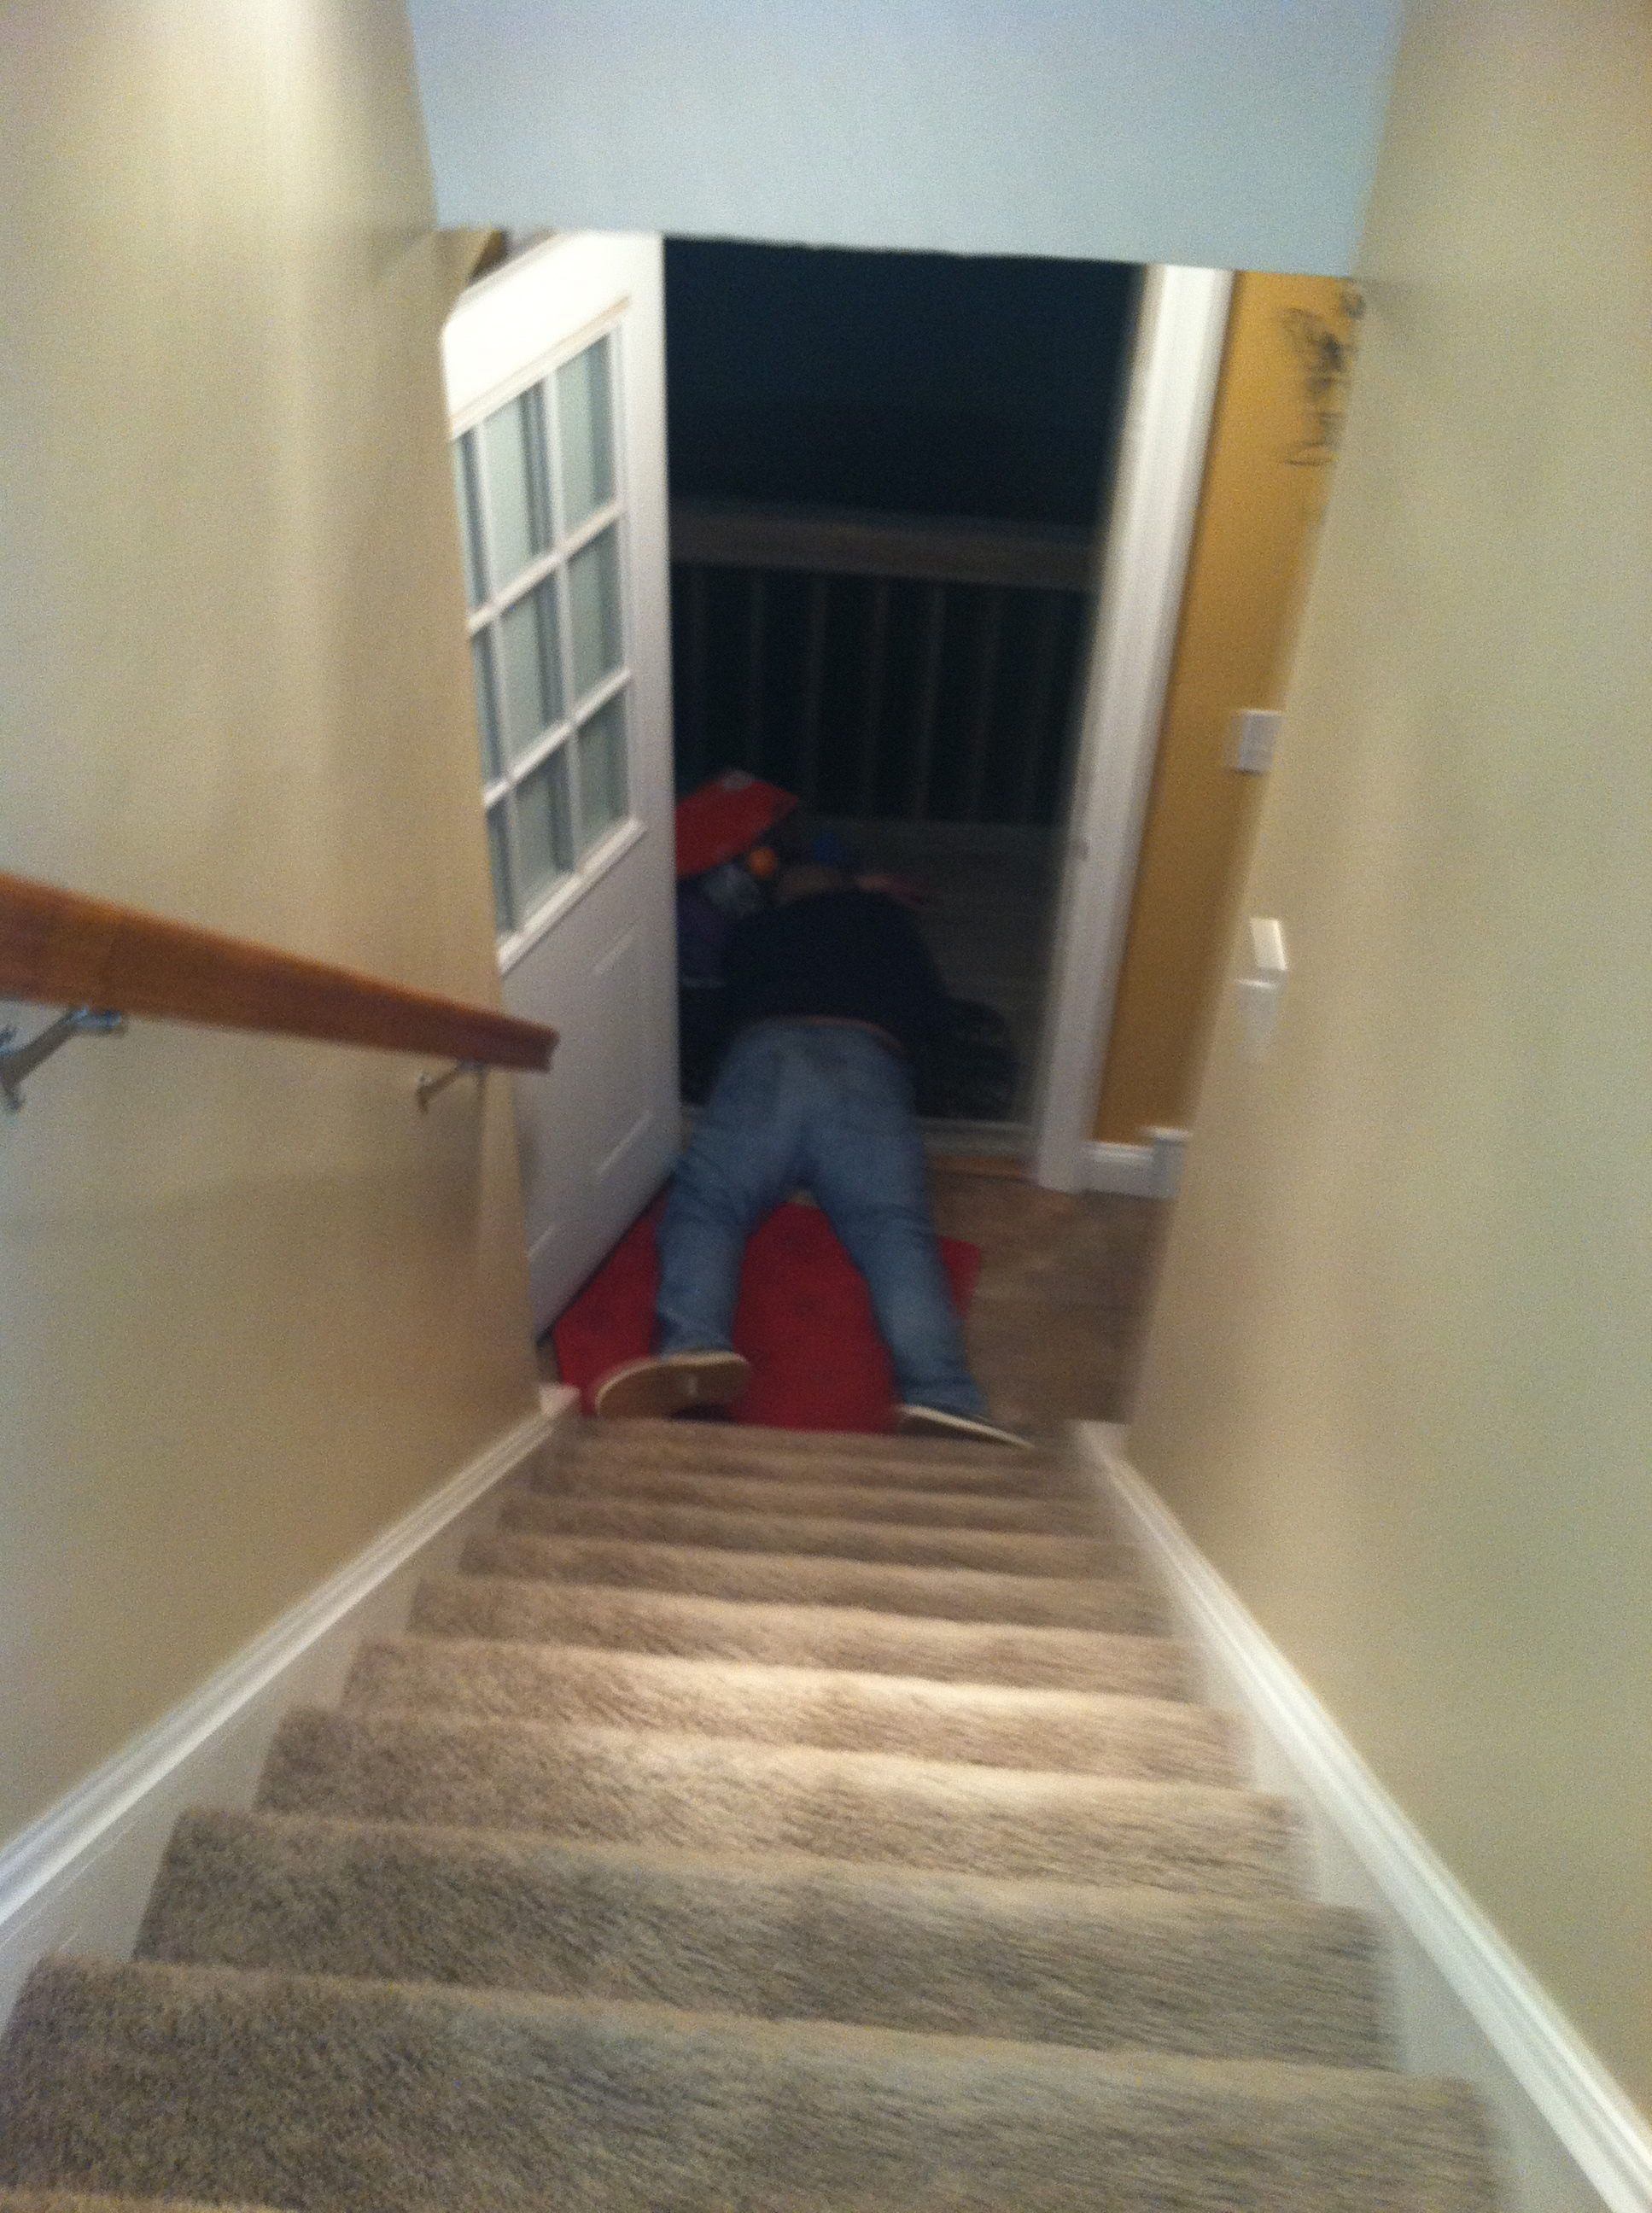 Kid Falls Down Stairs